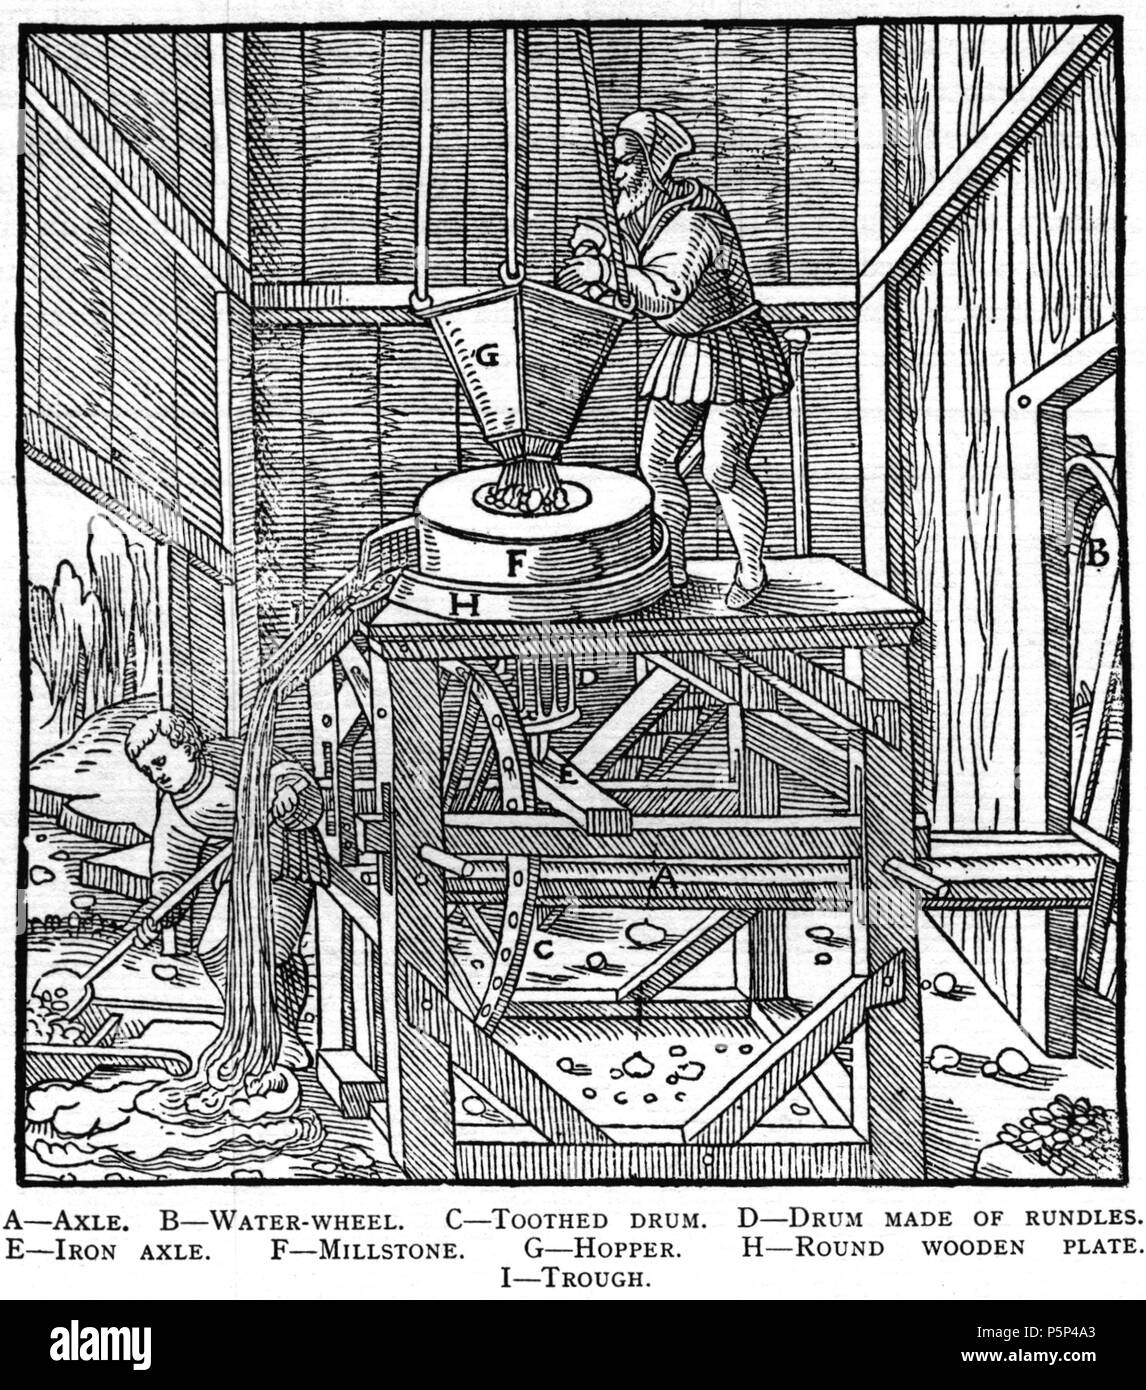 N/A. Woodcut illustration from De re metallica by Georgius Agricola. This is a 300dpi scan from the 1950 Dover edition of the 1913 Hoover translation of the 1556 reference. The Dover edition has slightly smaller size prints than the Hoover (which is a rare book). The woodcuts were recreated for the 1913 printing. Filenames (except for the title page) indicate the chapter (2, 3, 5, etc.) followed by the sequential number of the illustration. 2 May 2005, 07:12:58. TCO (talk) 223 Book8-20 - Stock Image